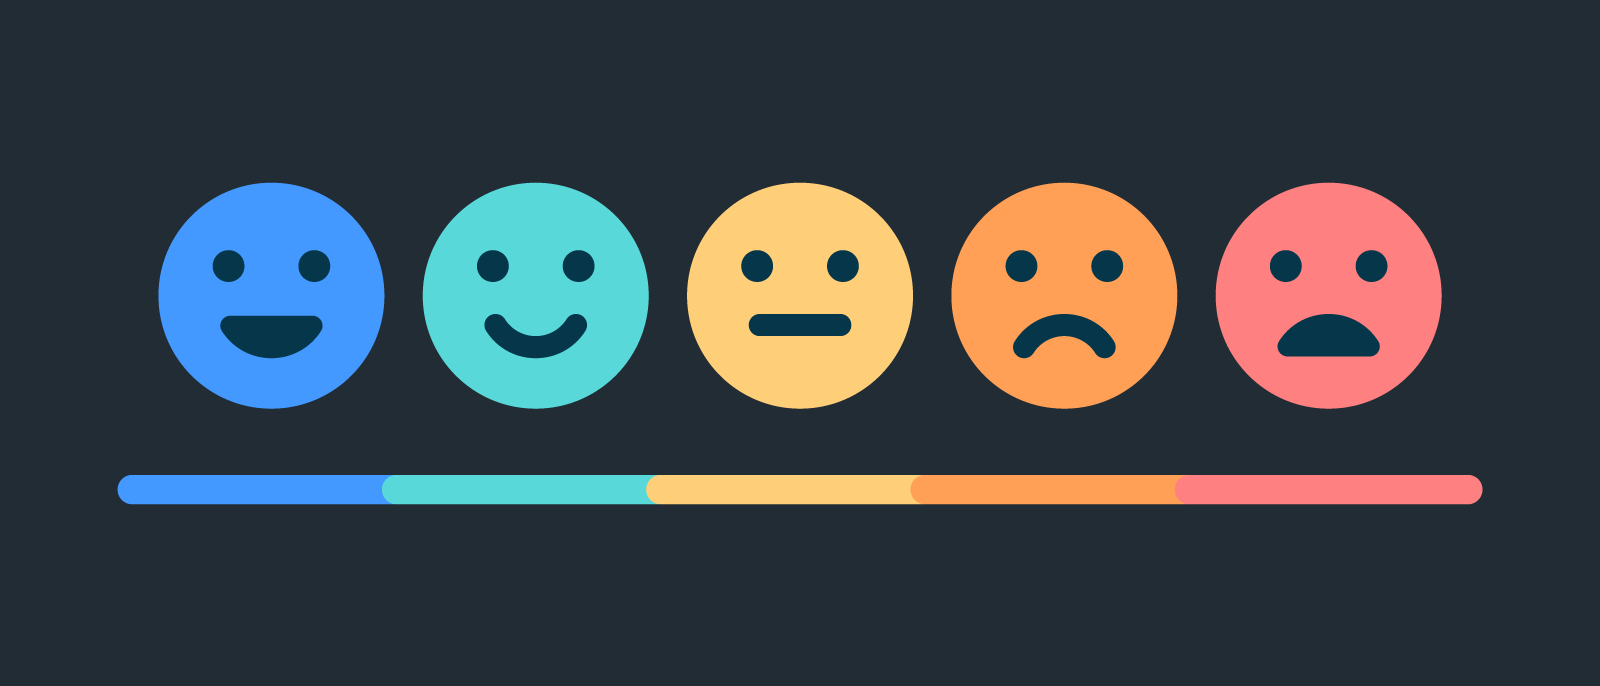 A spectrum of someone happy to someone sad.